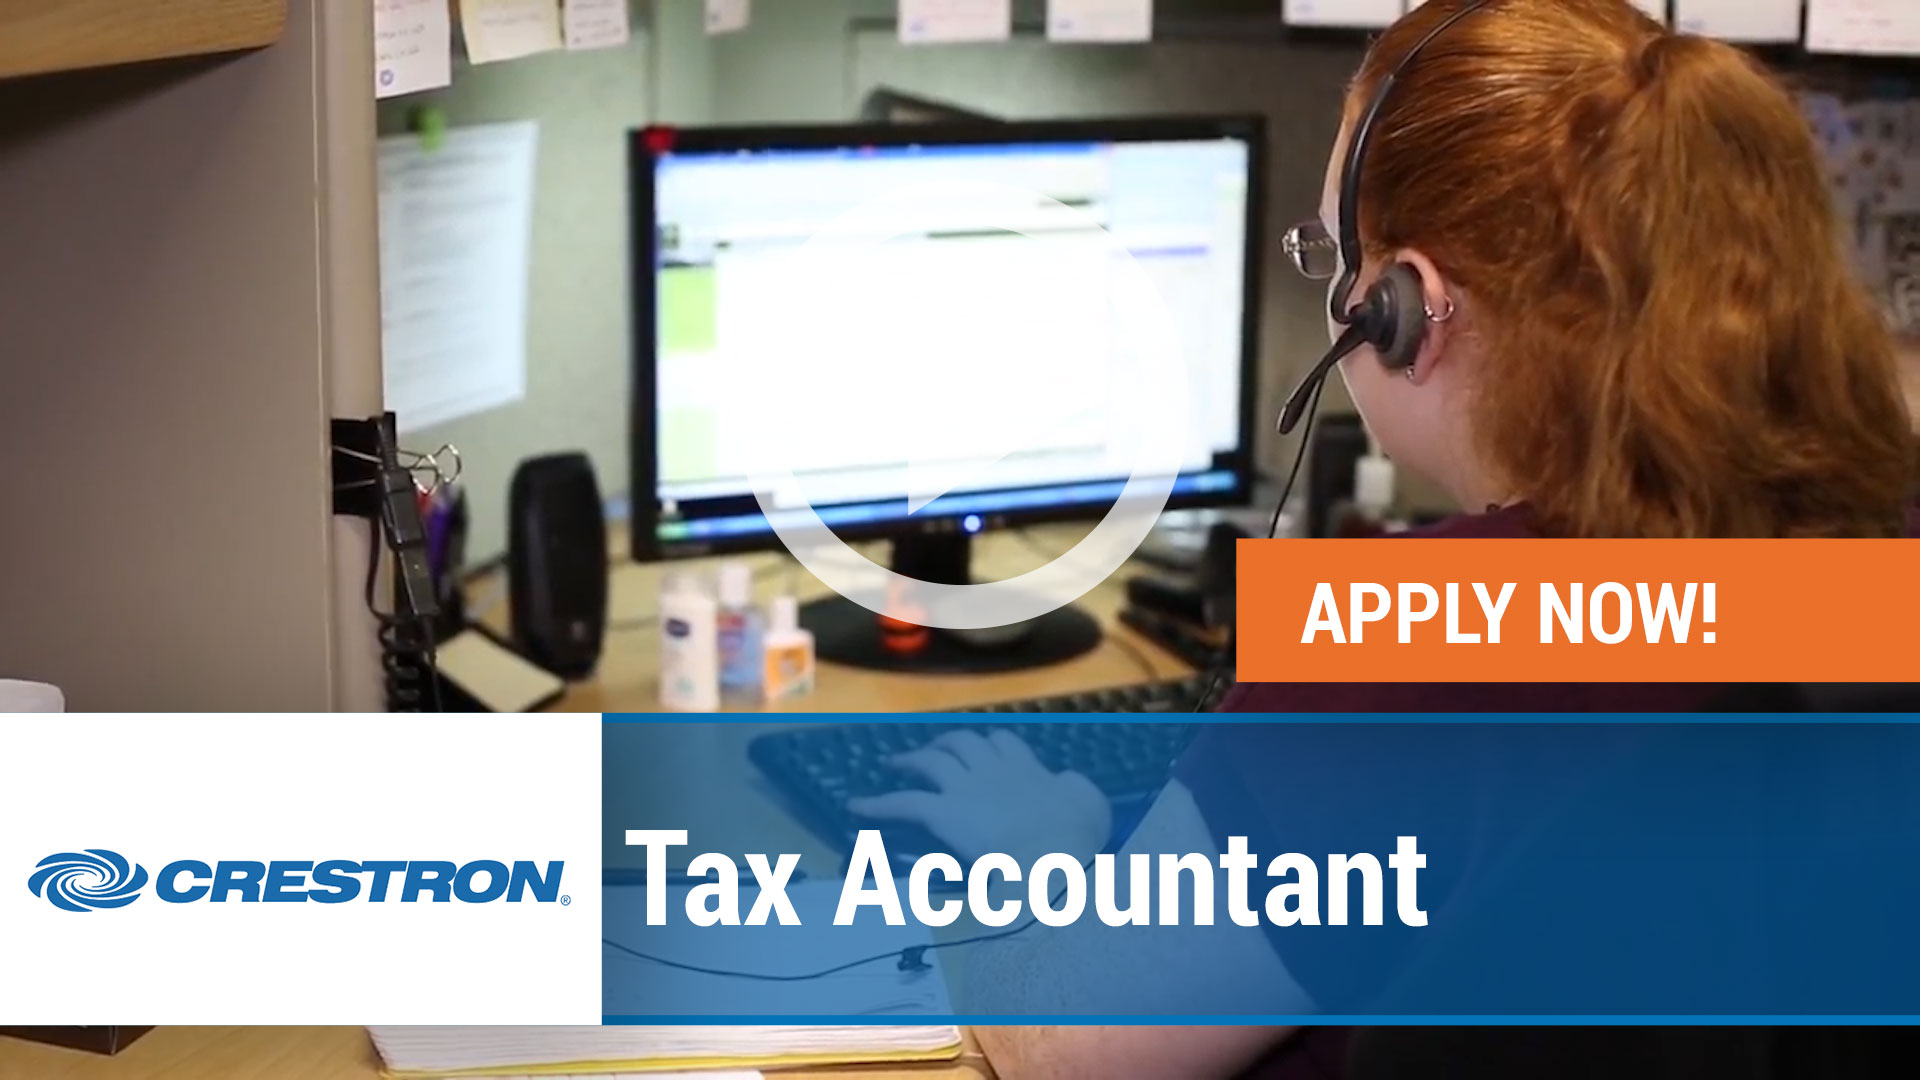 Watch our careers video for available job opening Tax Accountant in Rockleigh, NJ, USA